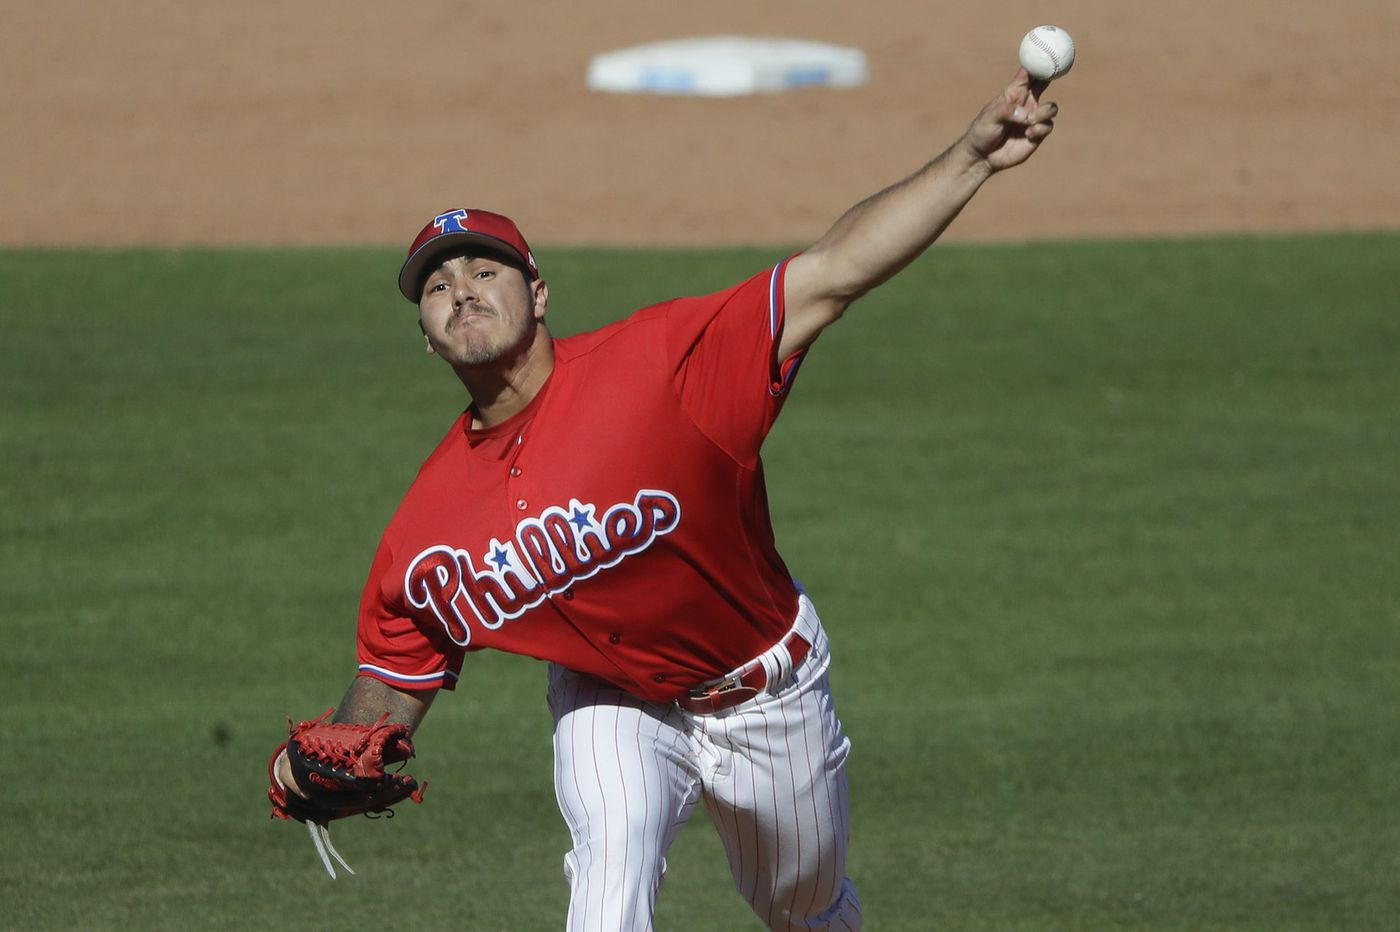 Phillies minor league report: Reading wins in walk-off fashion after 10 innings